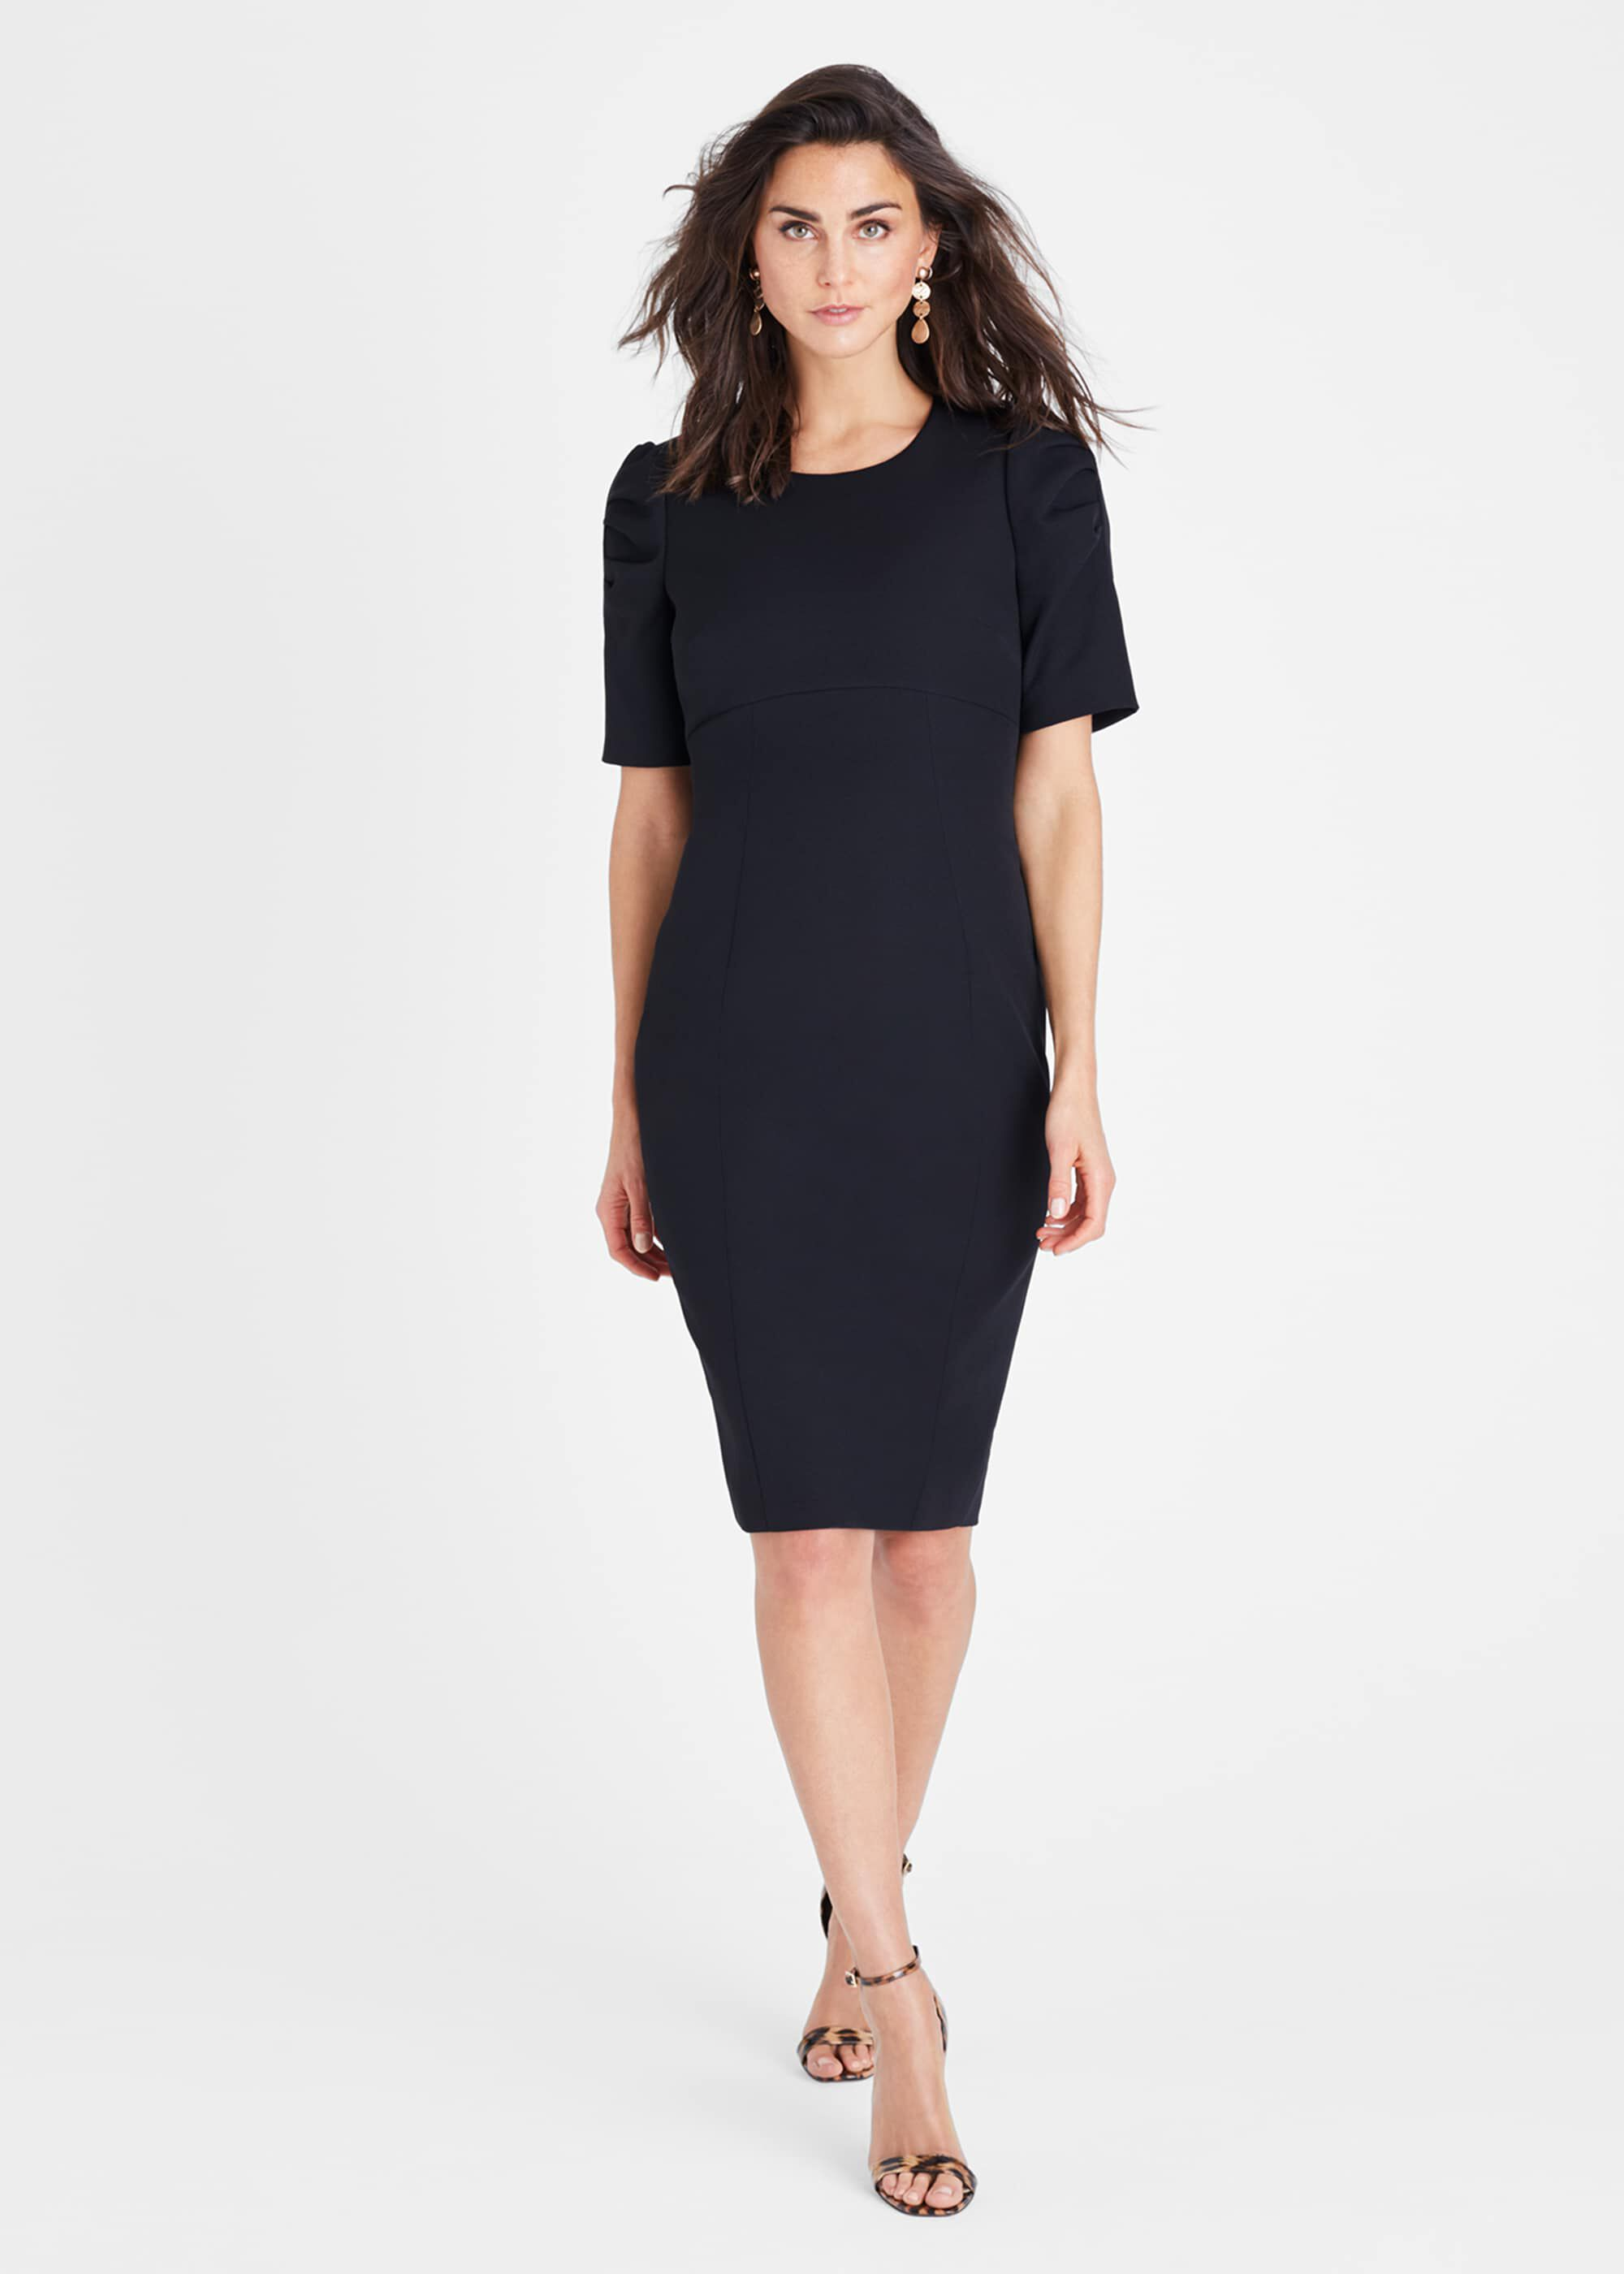 Damsel in a Dress Ella-Mai Fitted Dress, Black, Occasion Dress